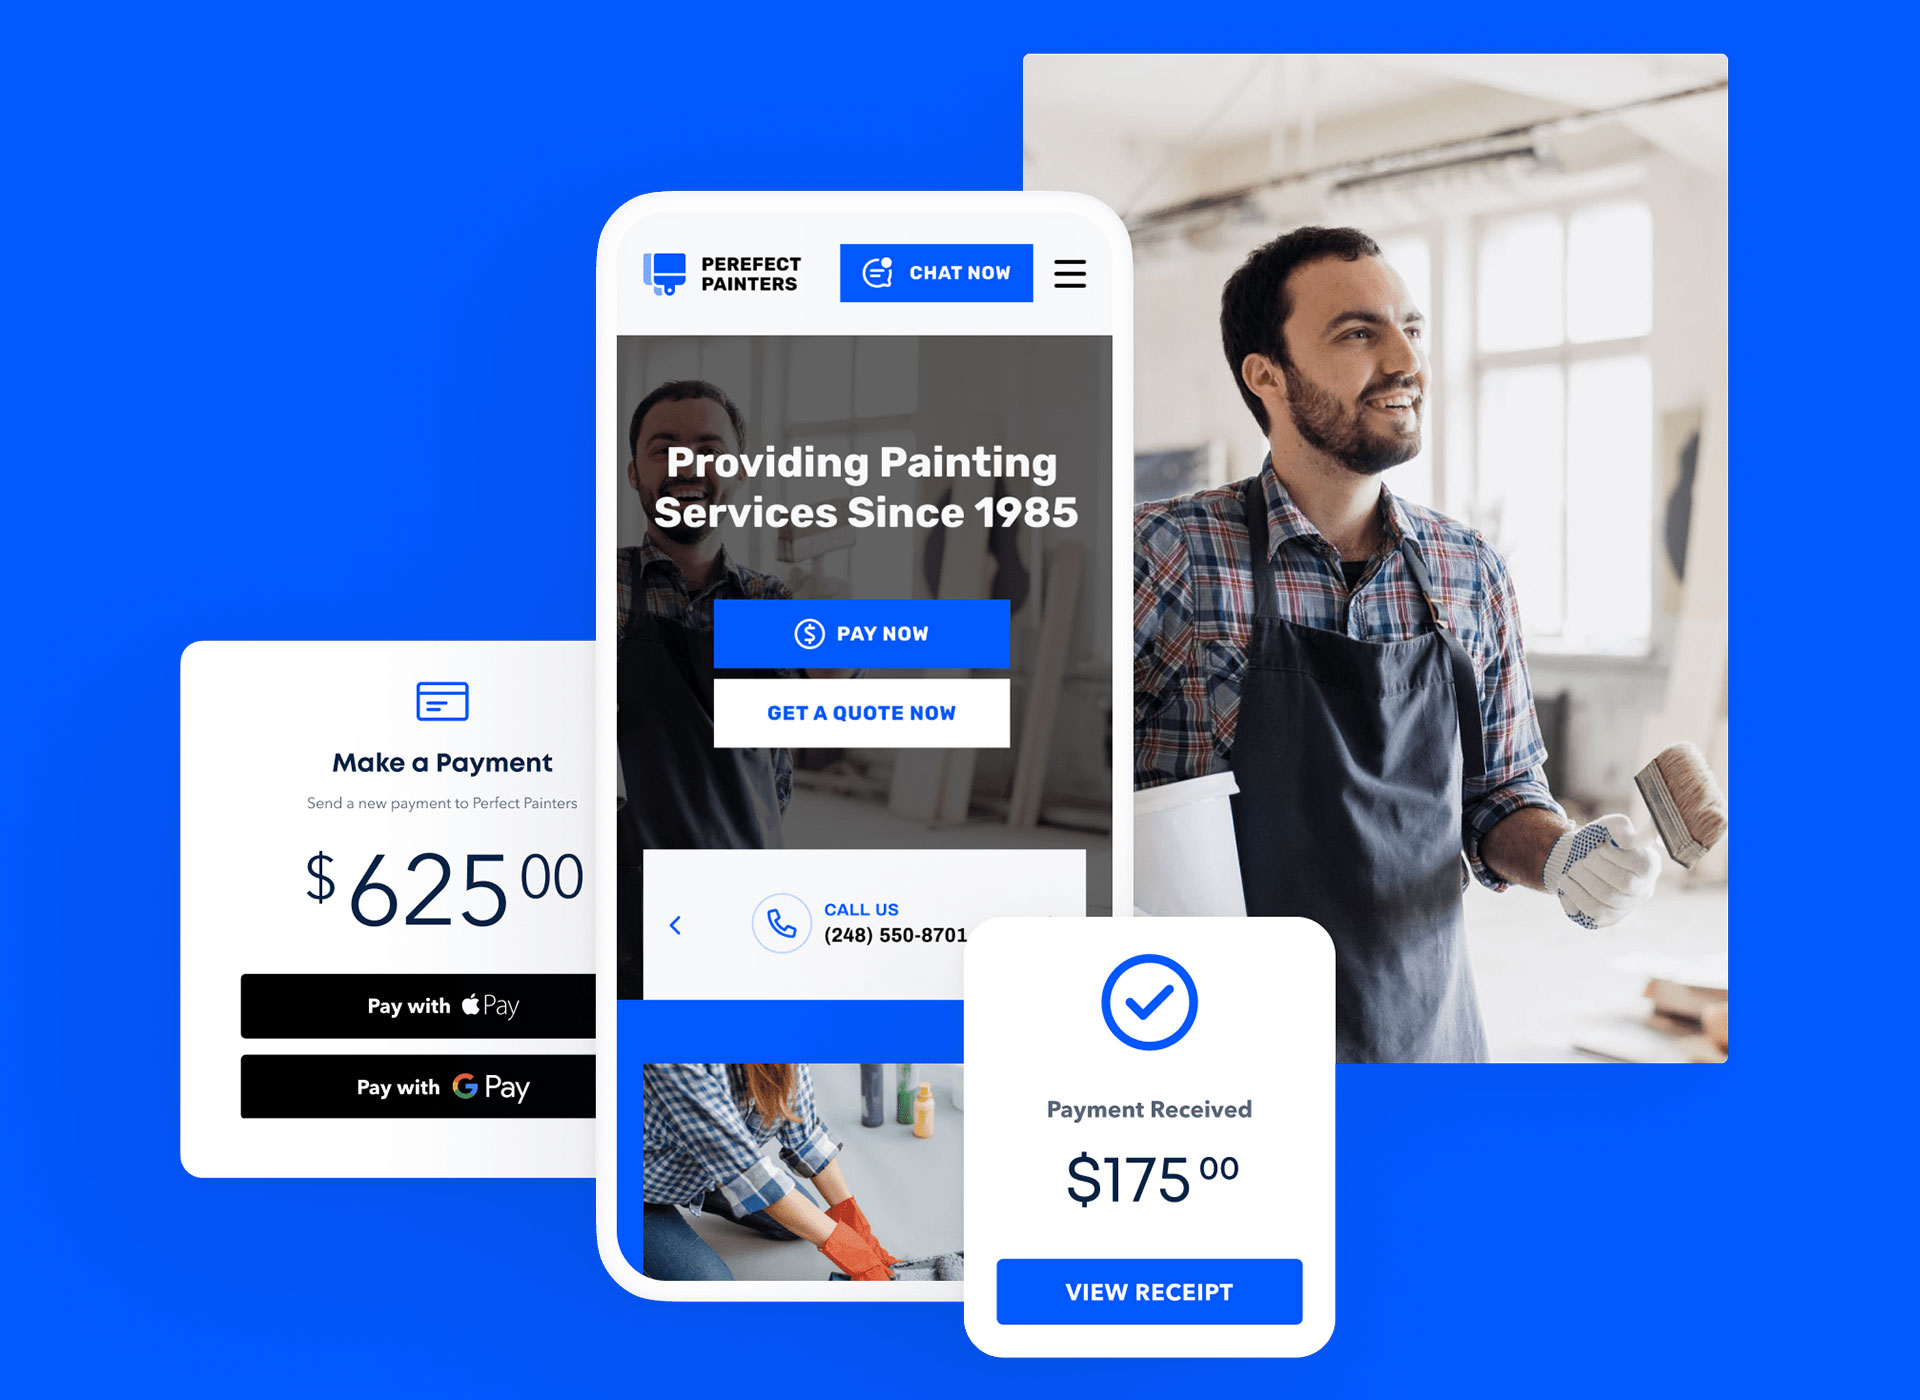 GoSite nets $16m funding to help small businesses move online